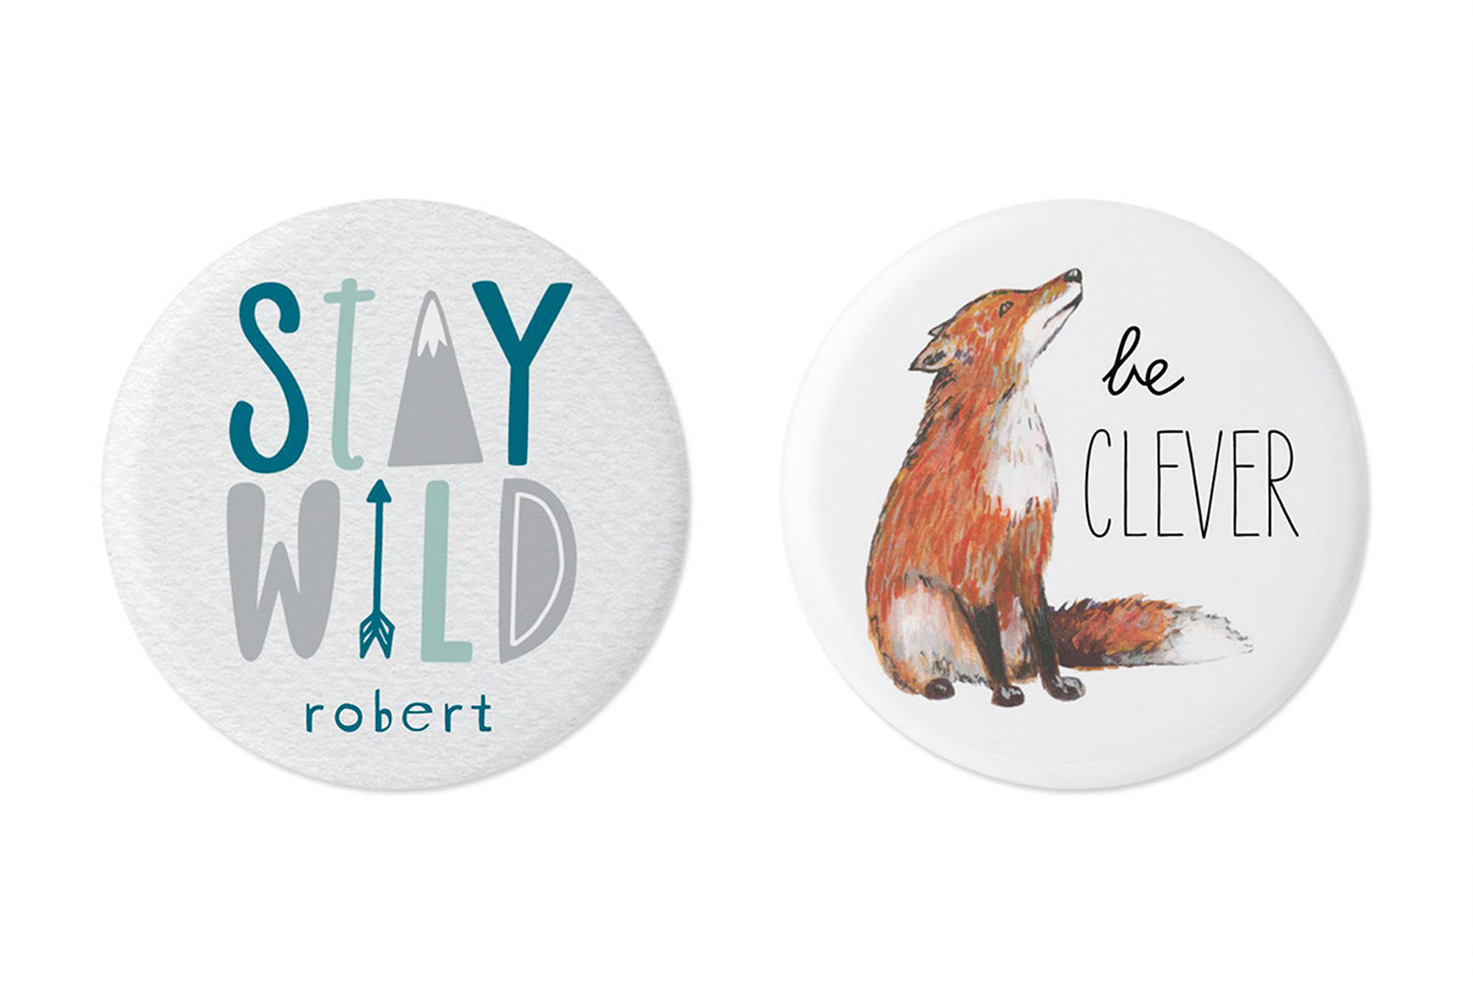 White, blue and gray pins with name, stay wild and fox.